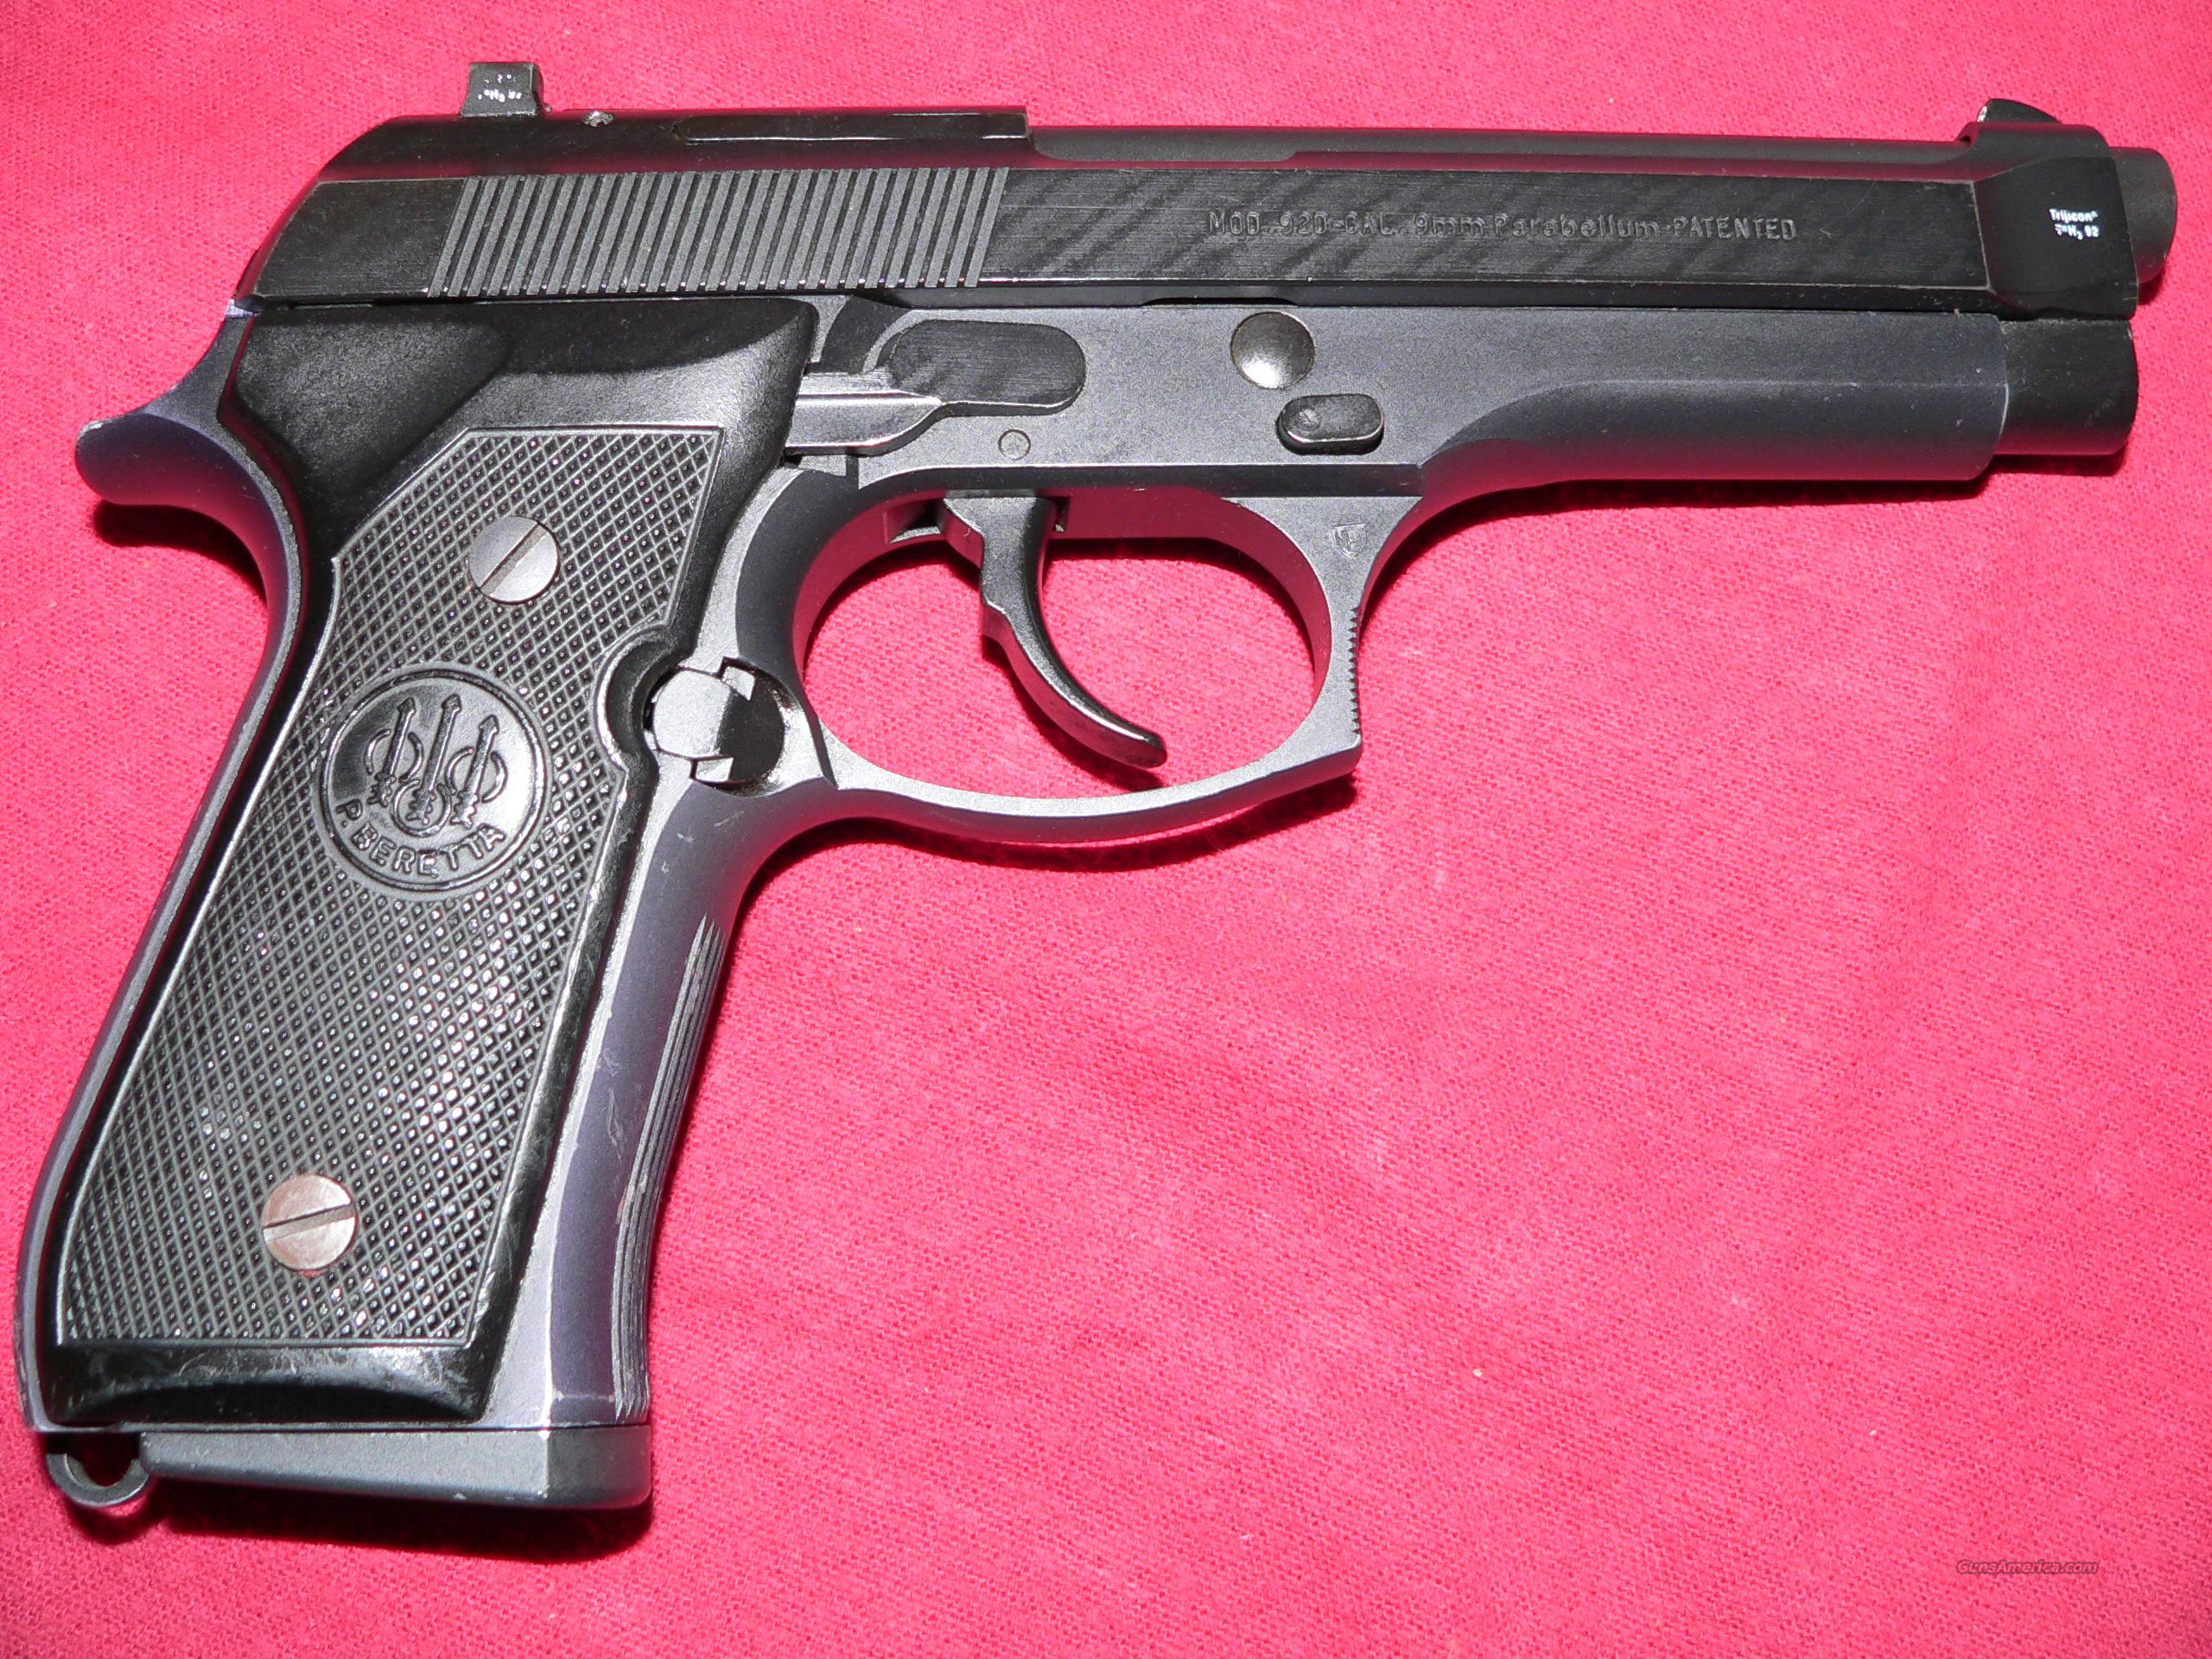 REDUCED Beretta Model 92D Double-Action Only (no safety) 9mm Semi-automatic  Pistol